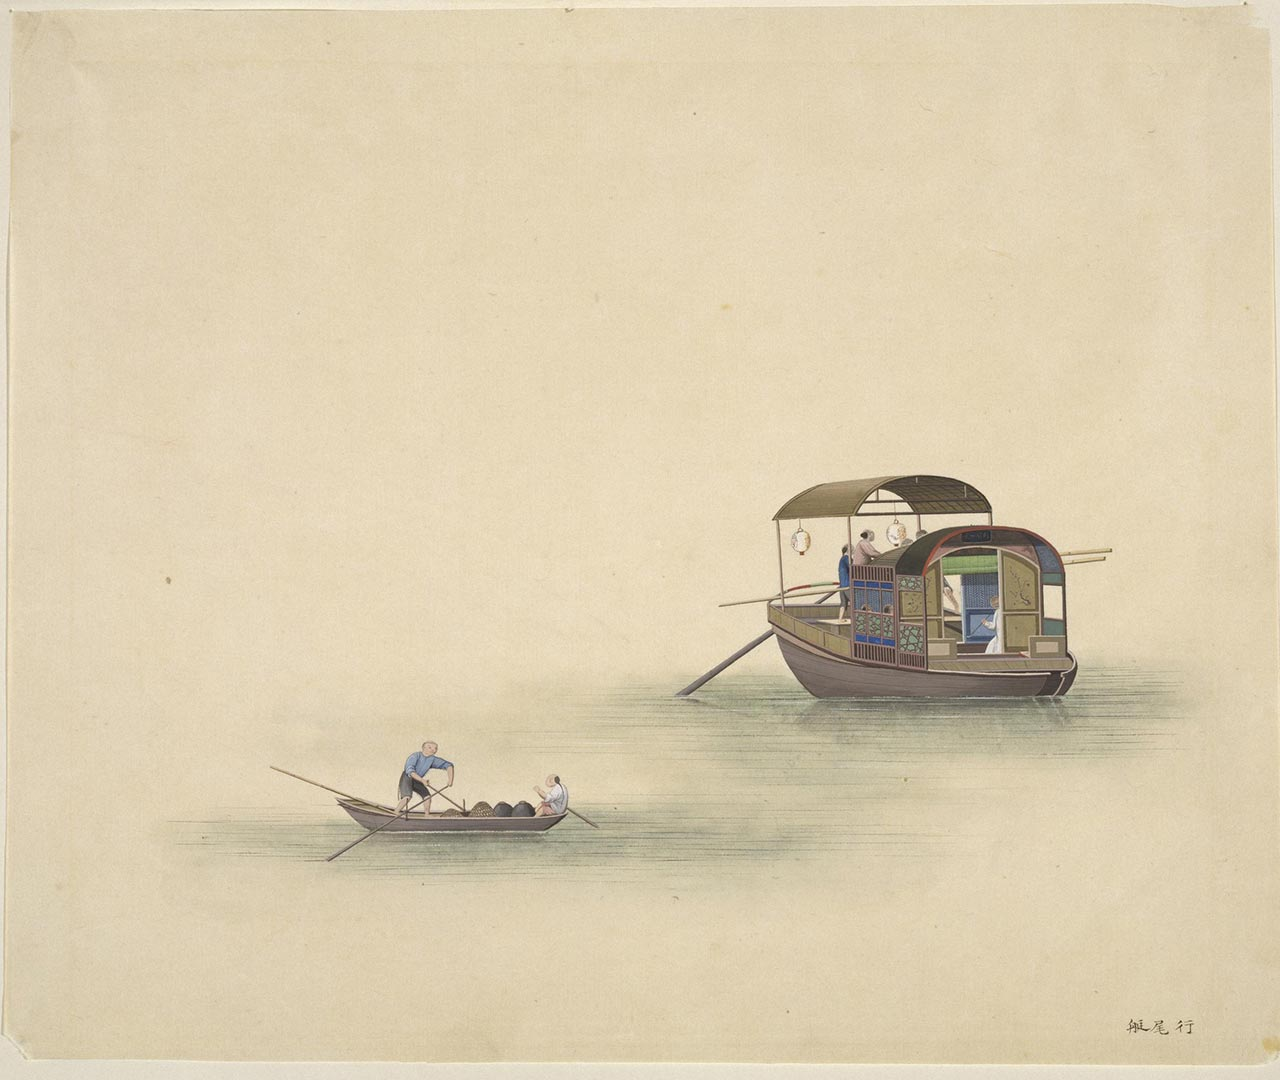 A tail boat, a small craft carrying merchandise that usually followed a larger boat.